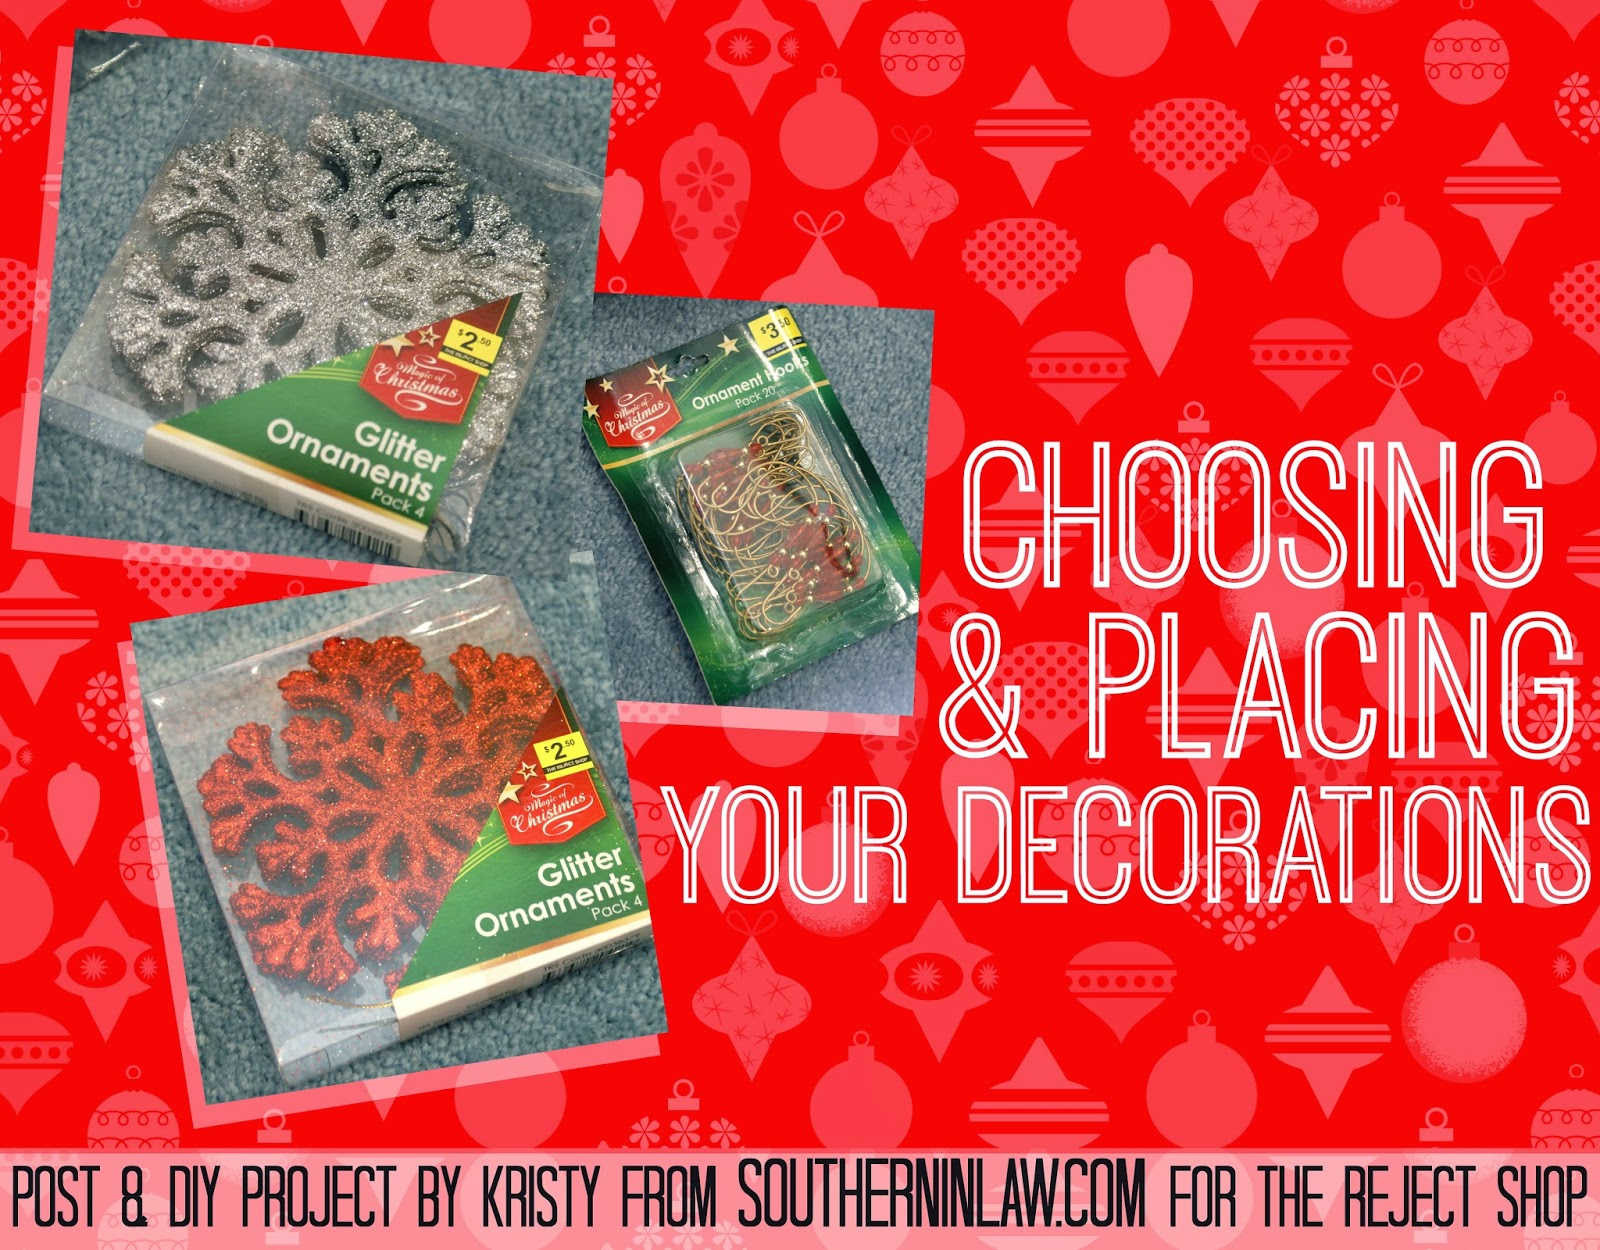 How to choose and place your Christmas ornaments